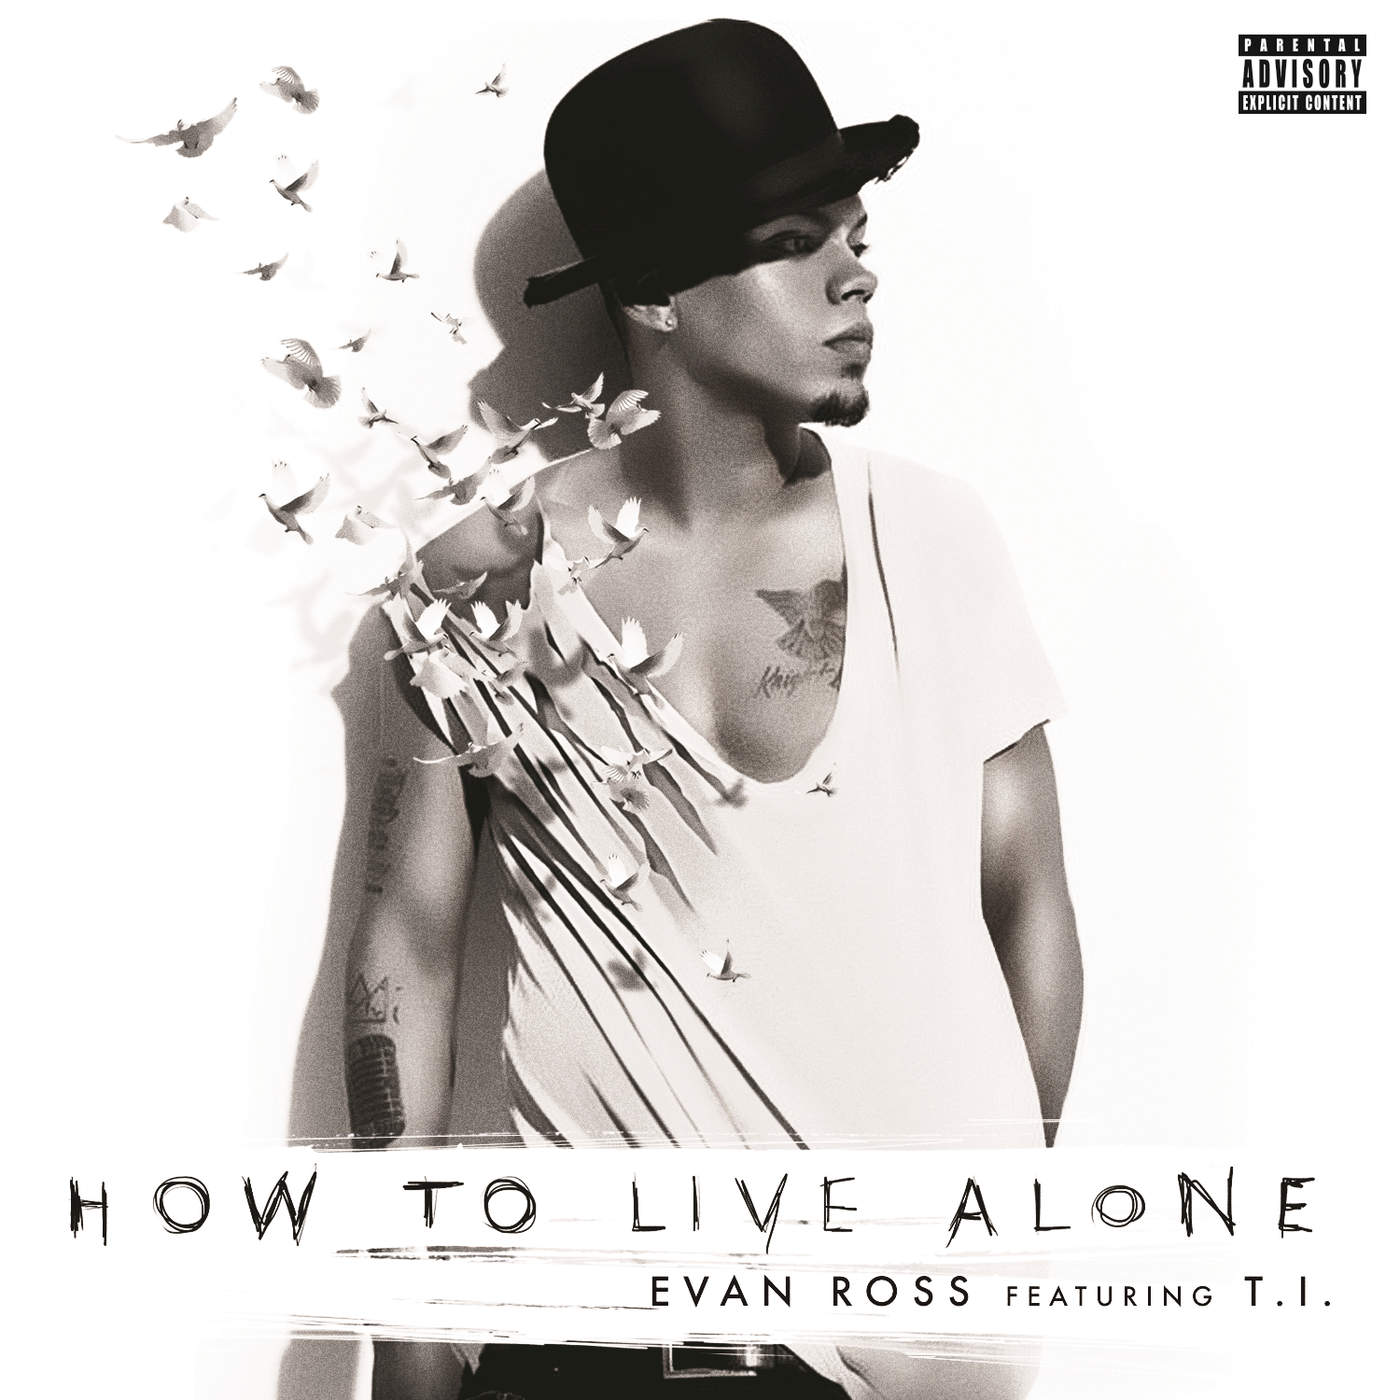 EVAN ROSS </br> How To Live Alone (Single)